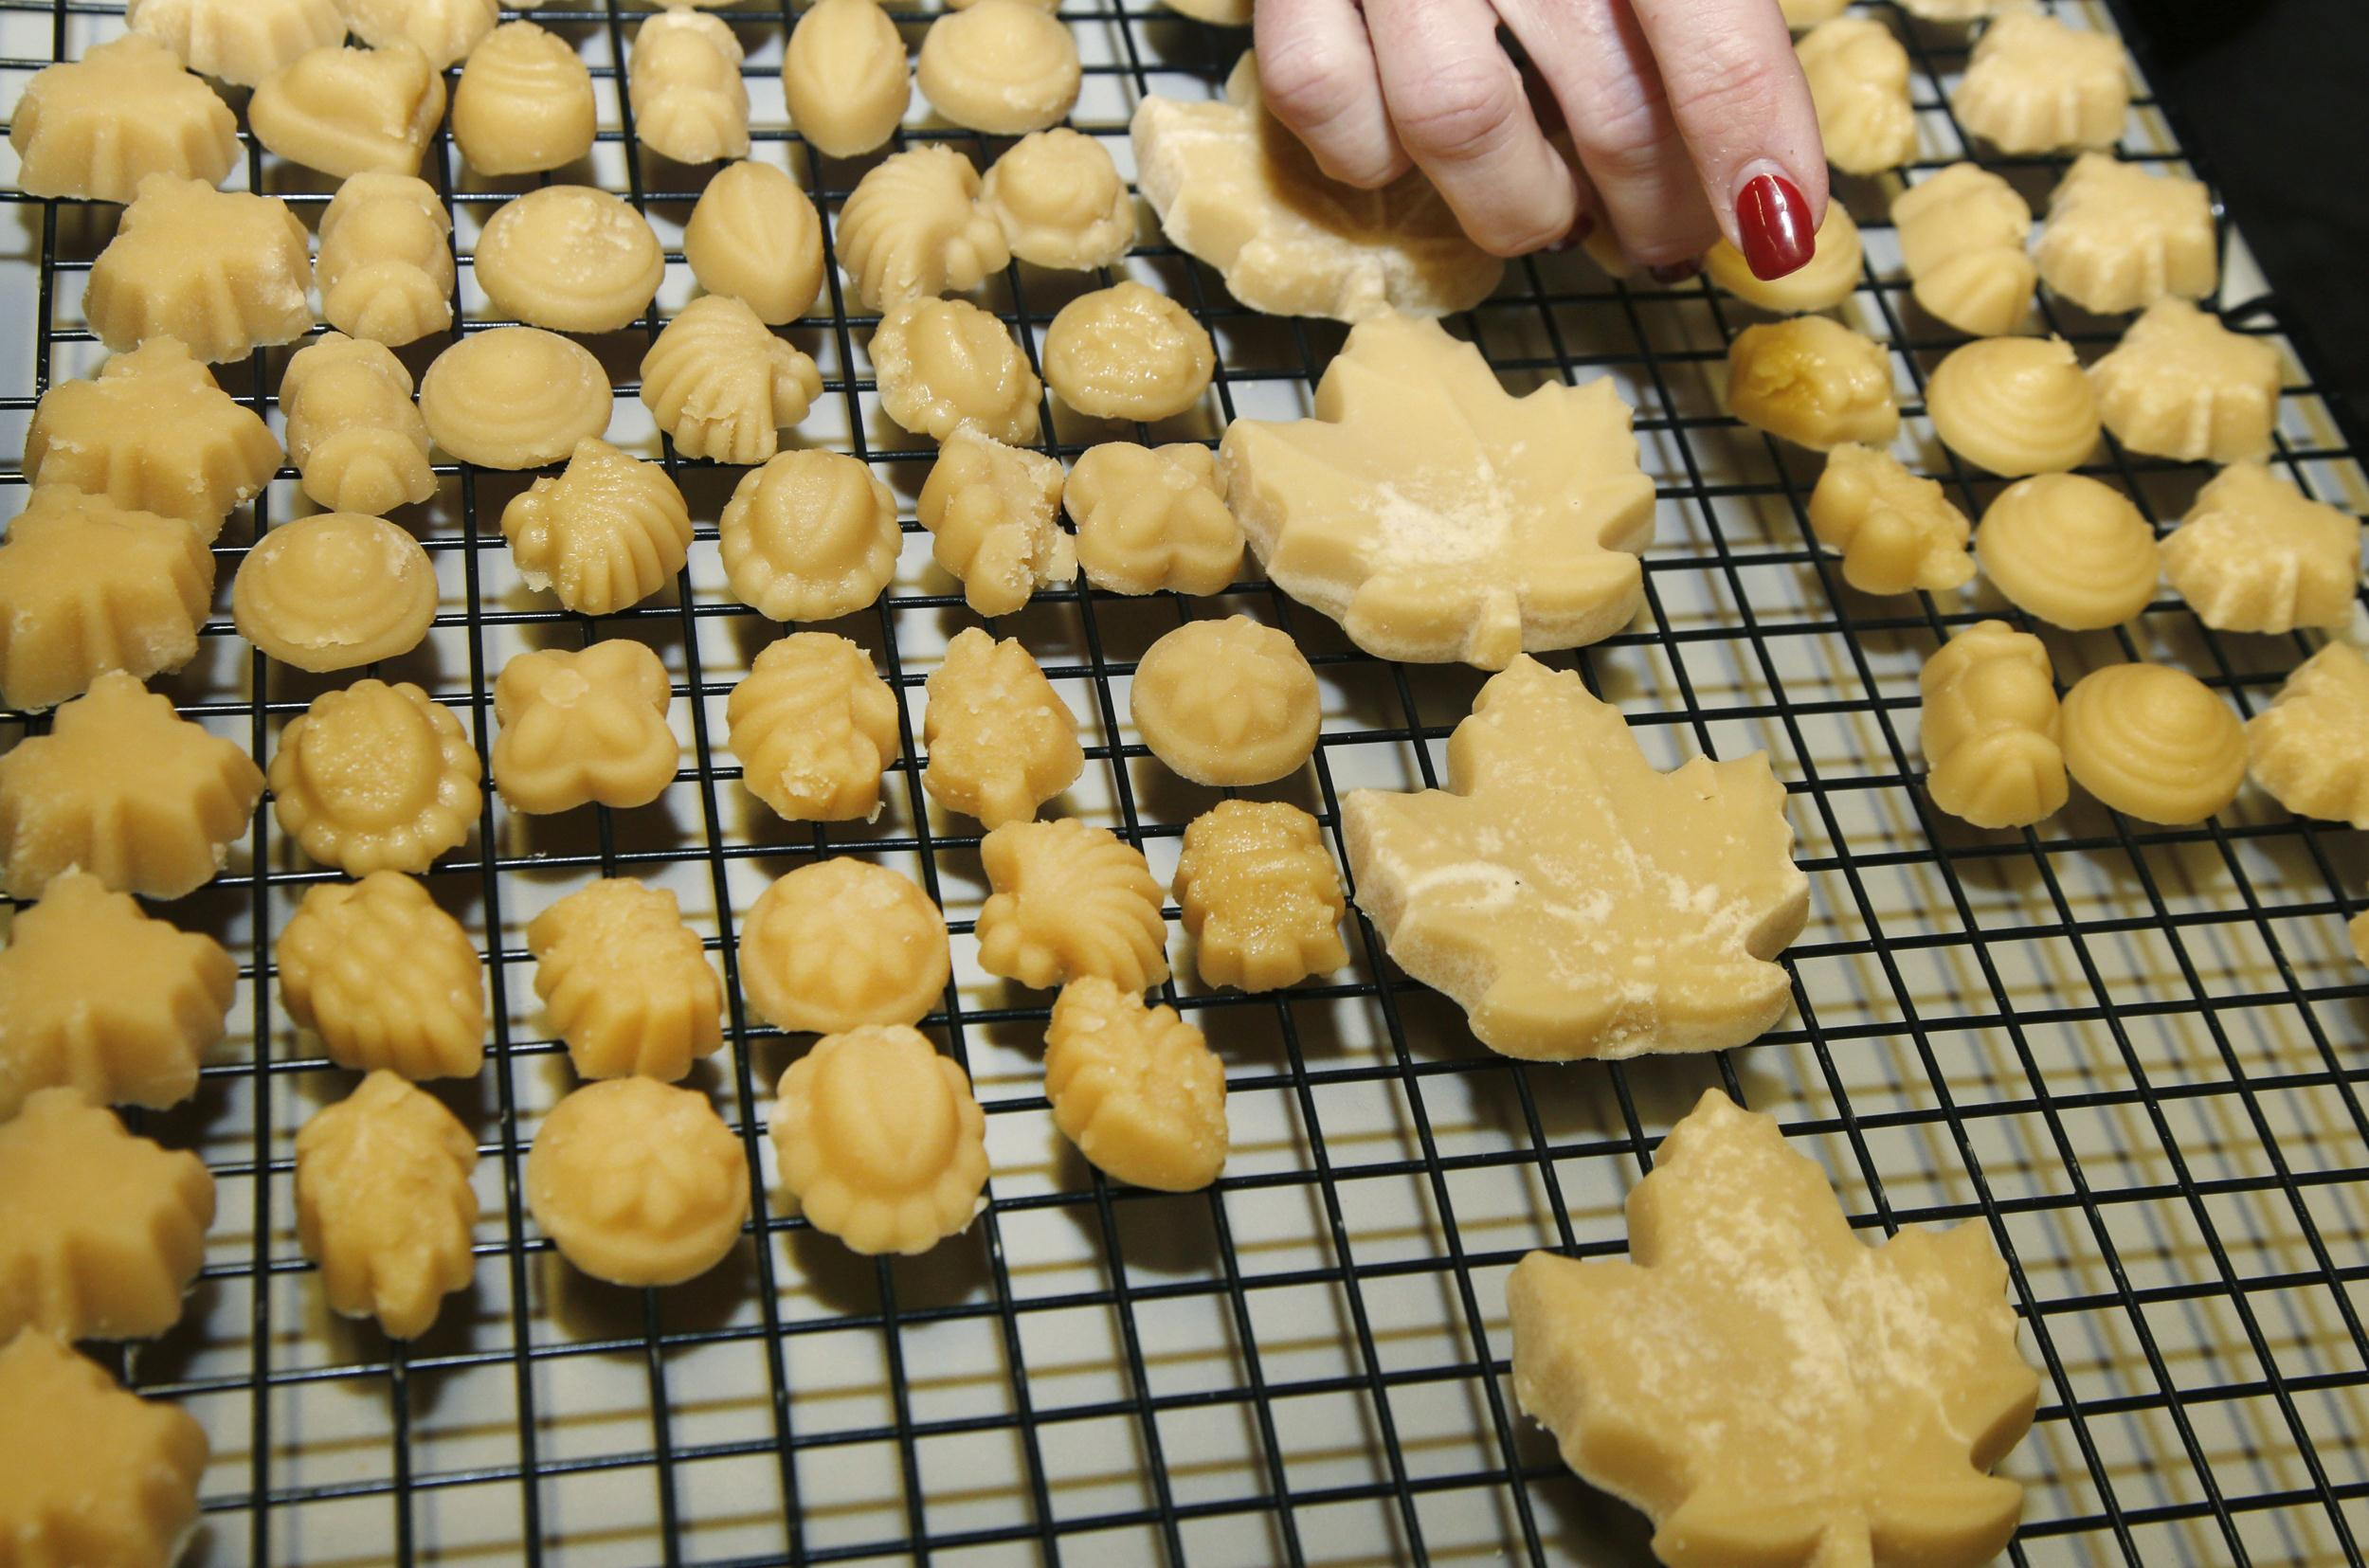 Image: Kathy Gallagher places maple sugar candy on a drying rack at the Turtle Lane Maple sugar house in North Andover, M